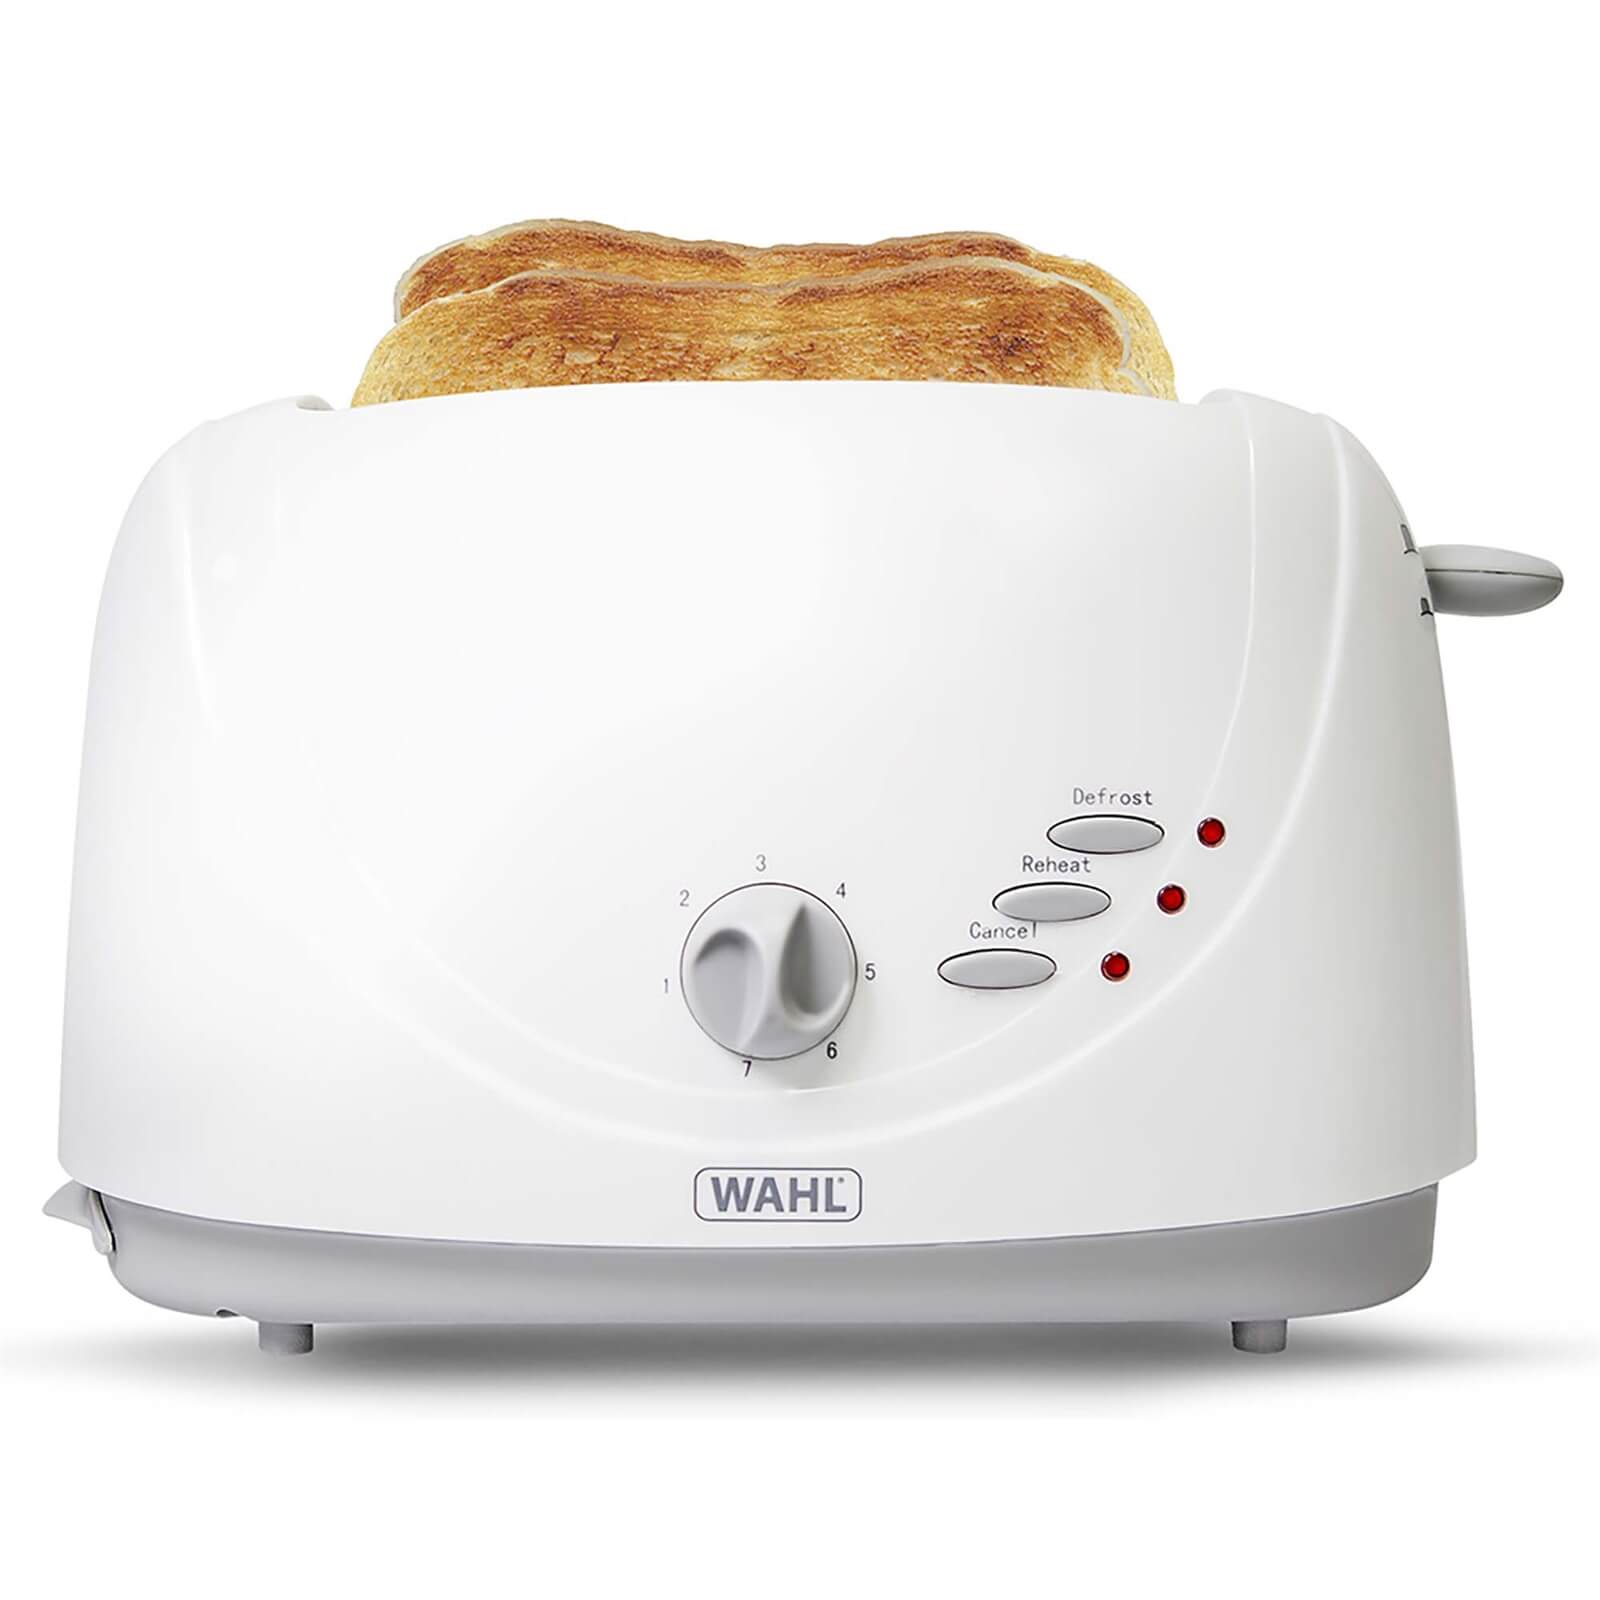 Wahl 2 Slice Toaster - White